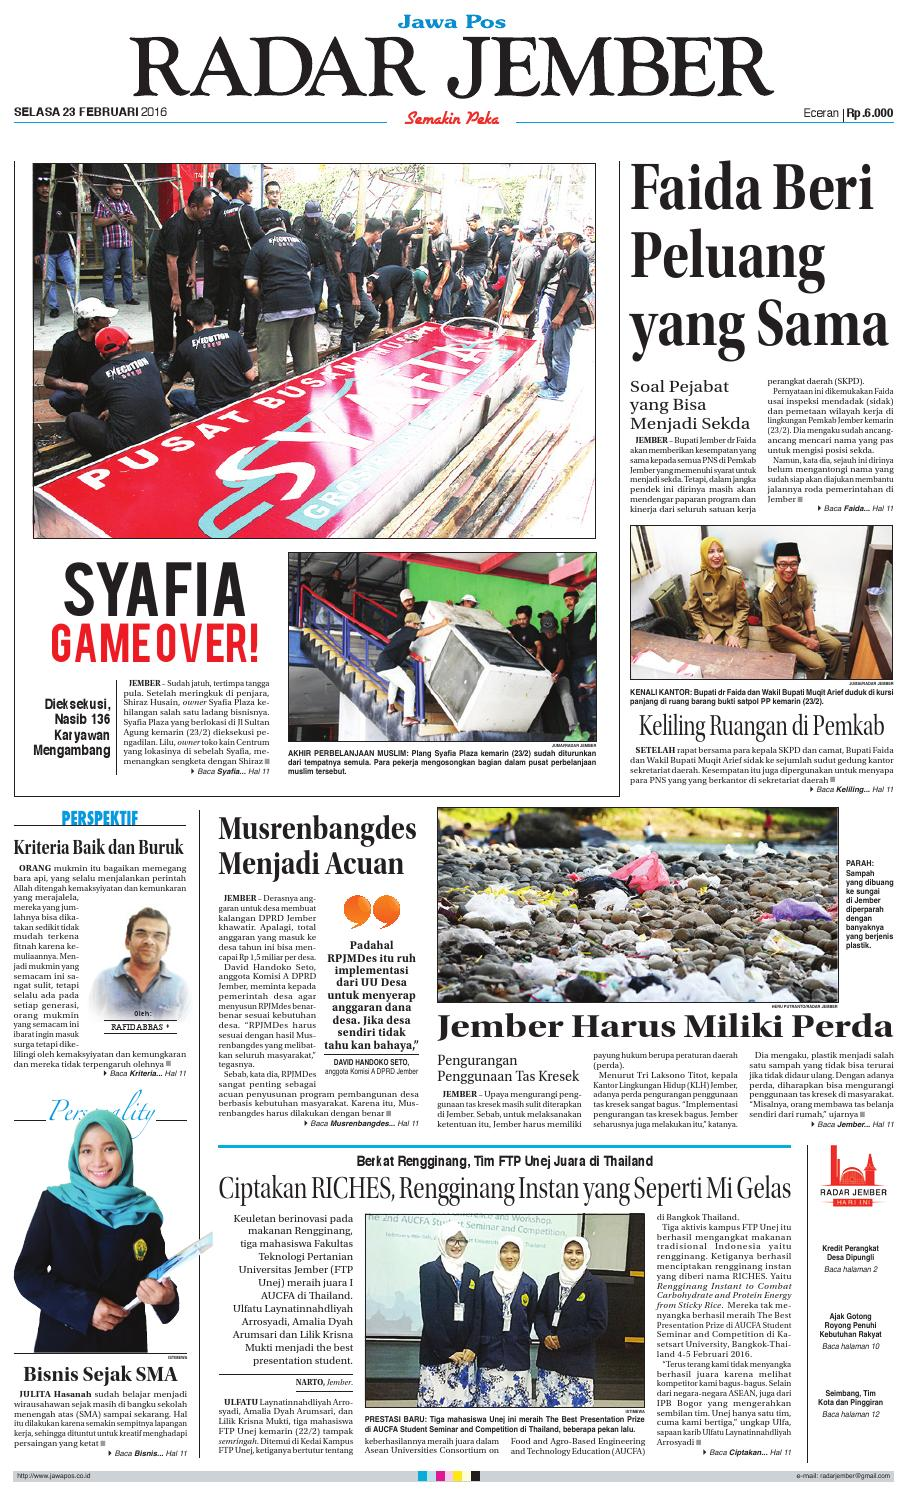 jember 230216 rj by radar jember online issuu